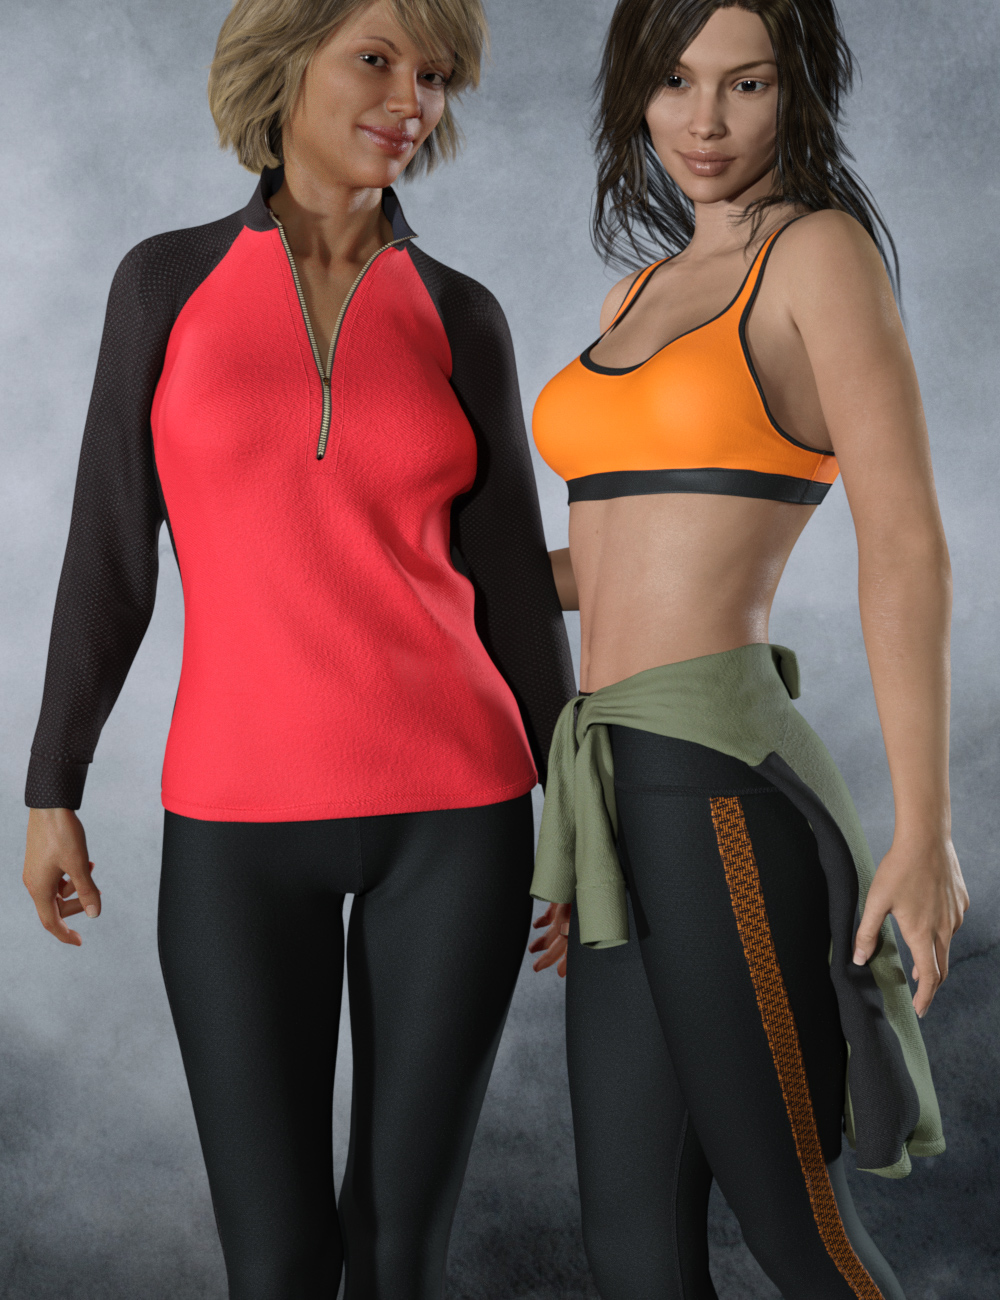 dForce Tek Athletic Apparel for Genesis 3 and 8 Female(s) by: the3dwizard, 3D Models by Daz 3D